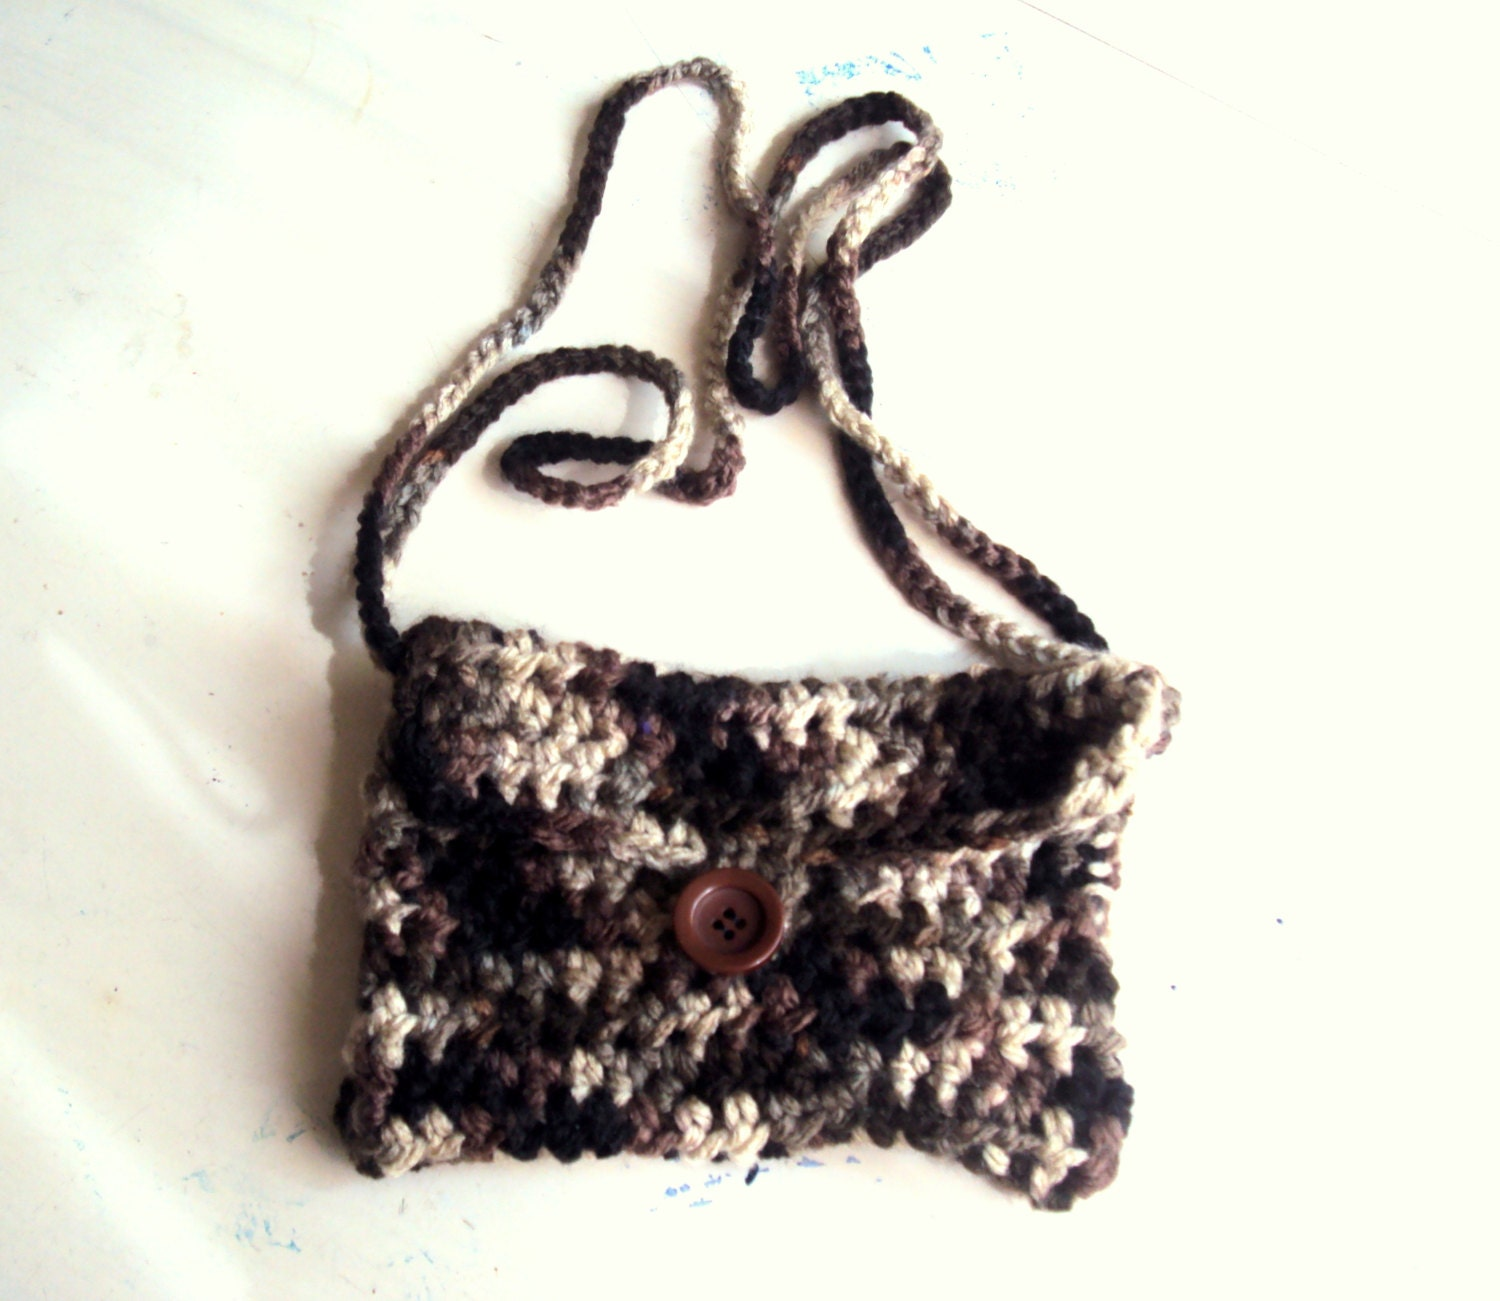 Crochet Shoulder Bag : Crochet Purse Shoulder Bag Easy to Carry Purse by GrahamsBazaar